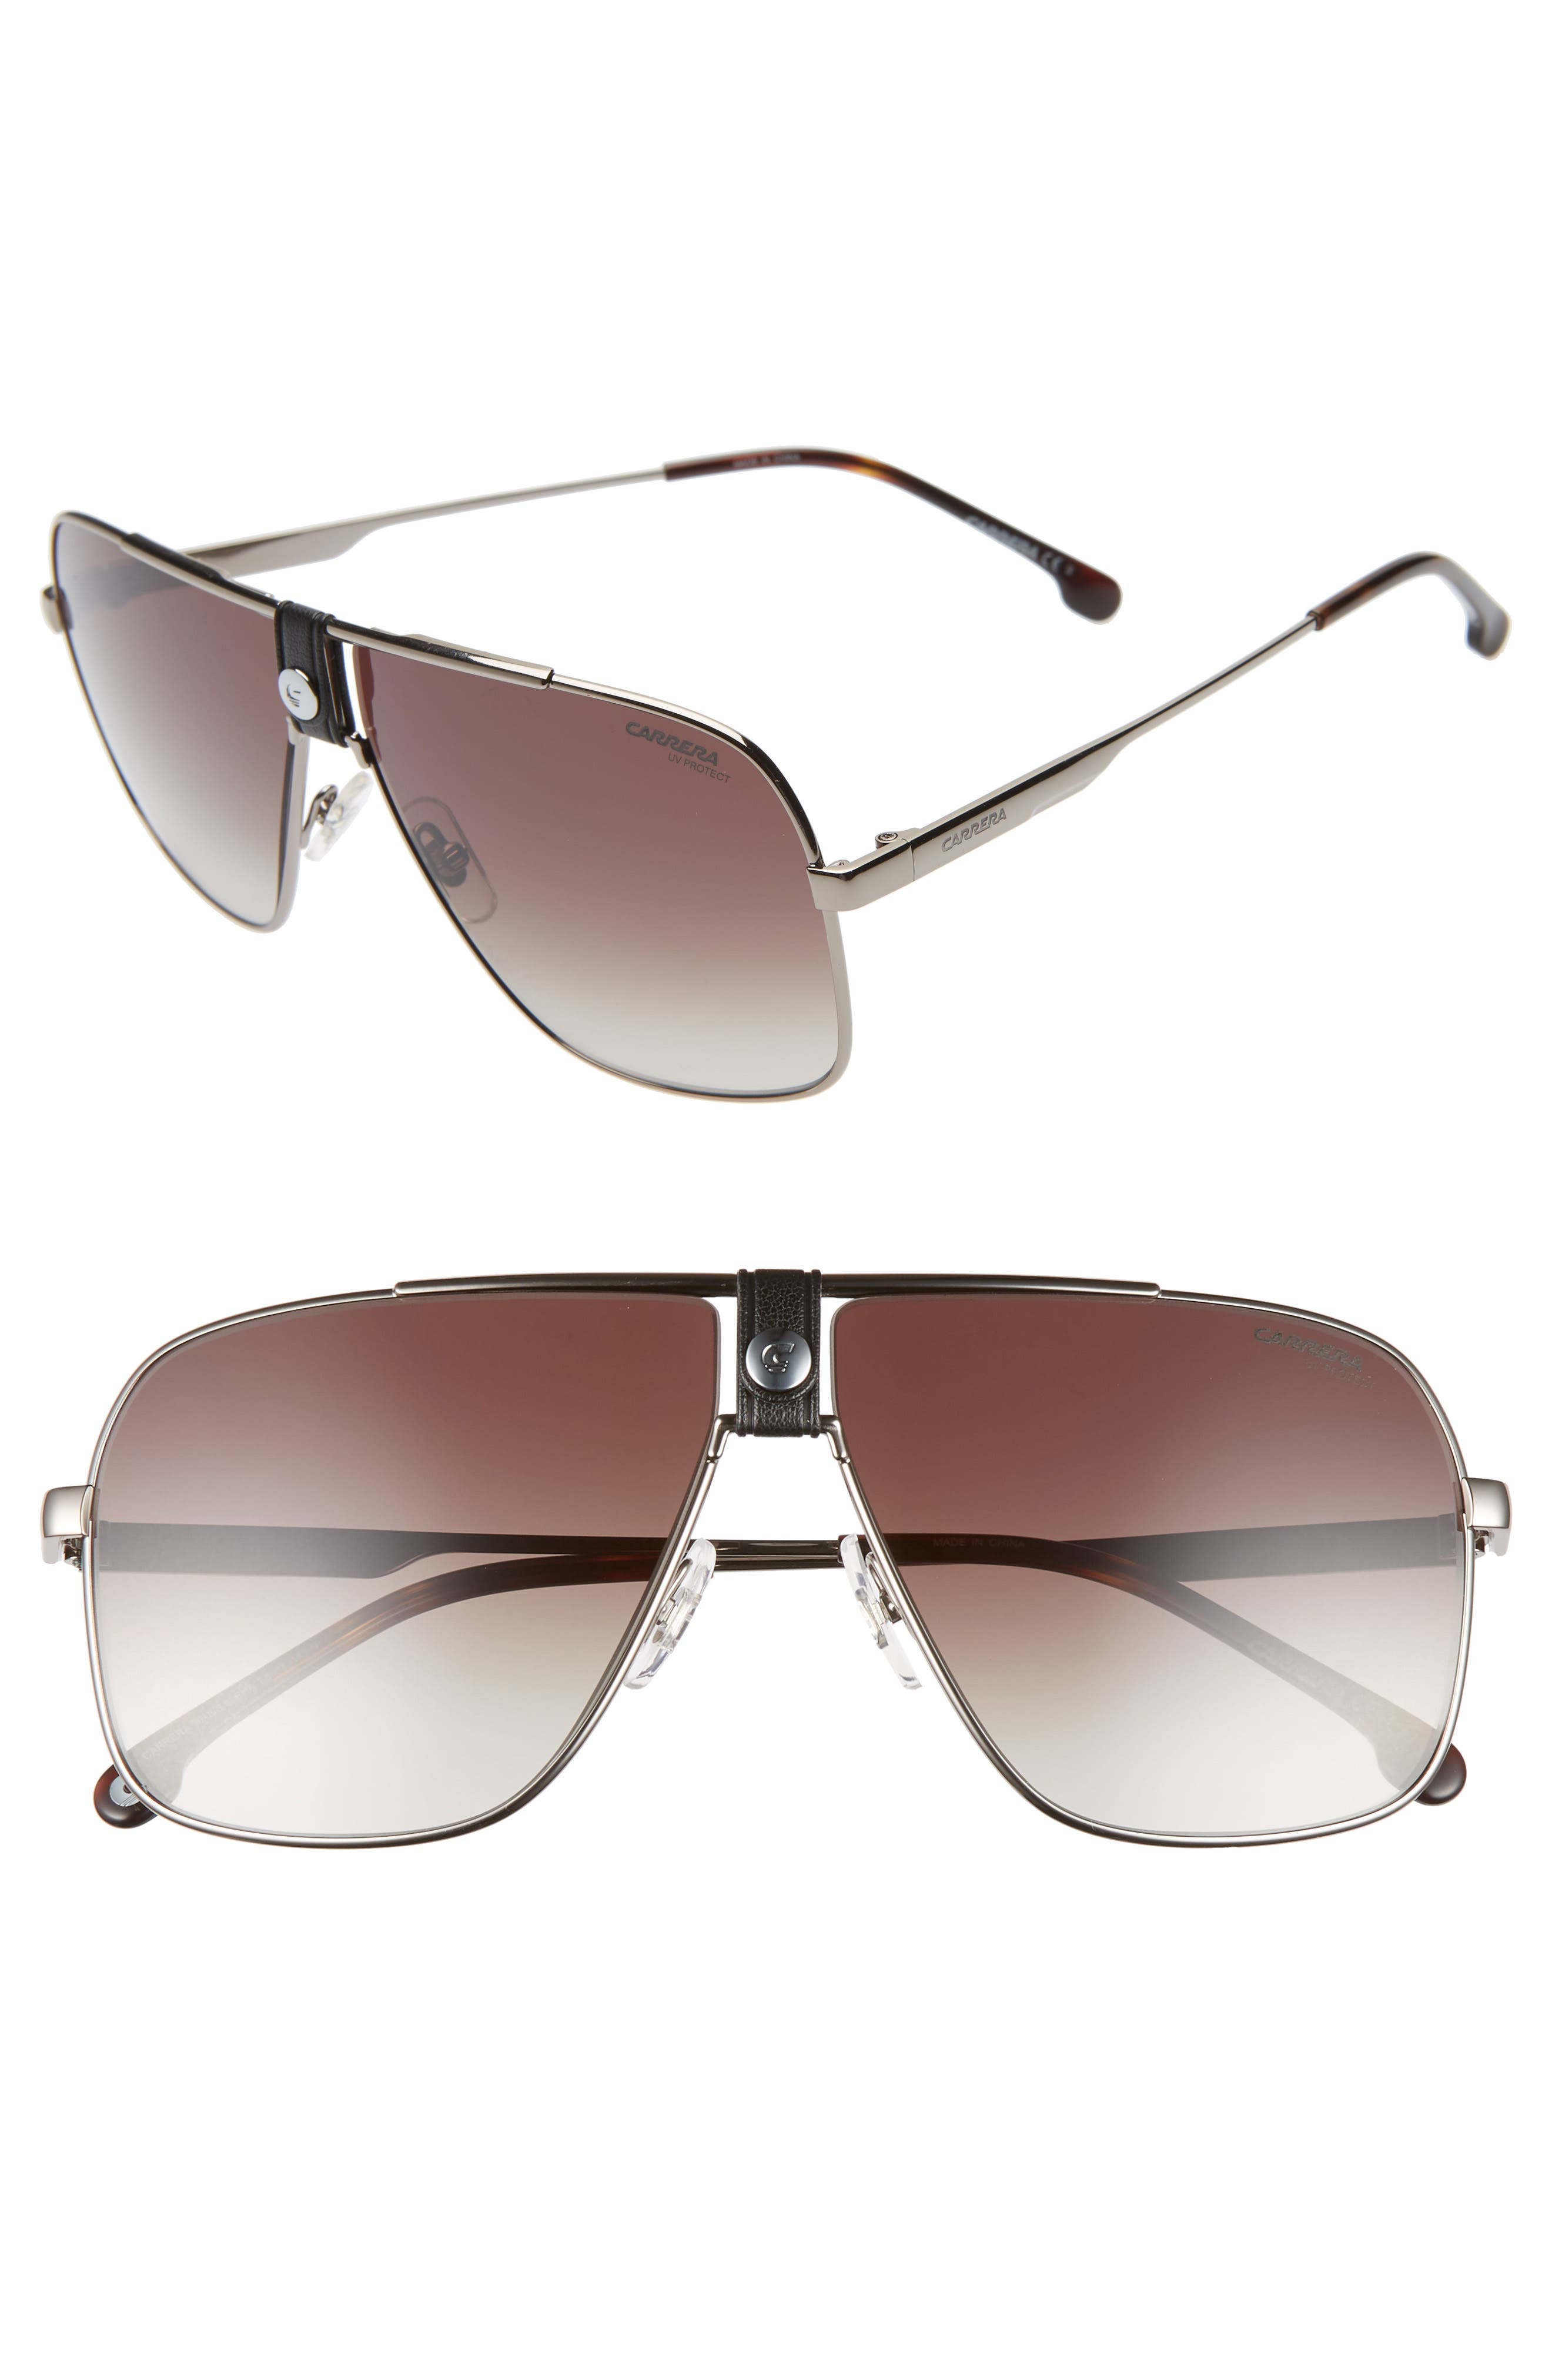 Carrera Eyewear 6m Navigator Sunglasses - Ruthenium